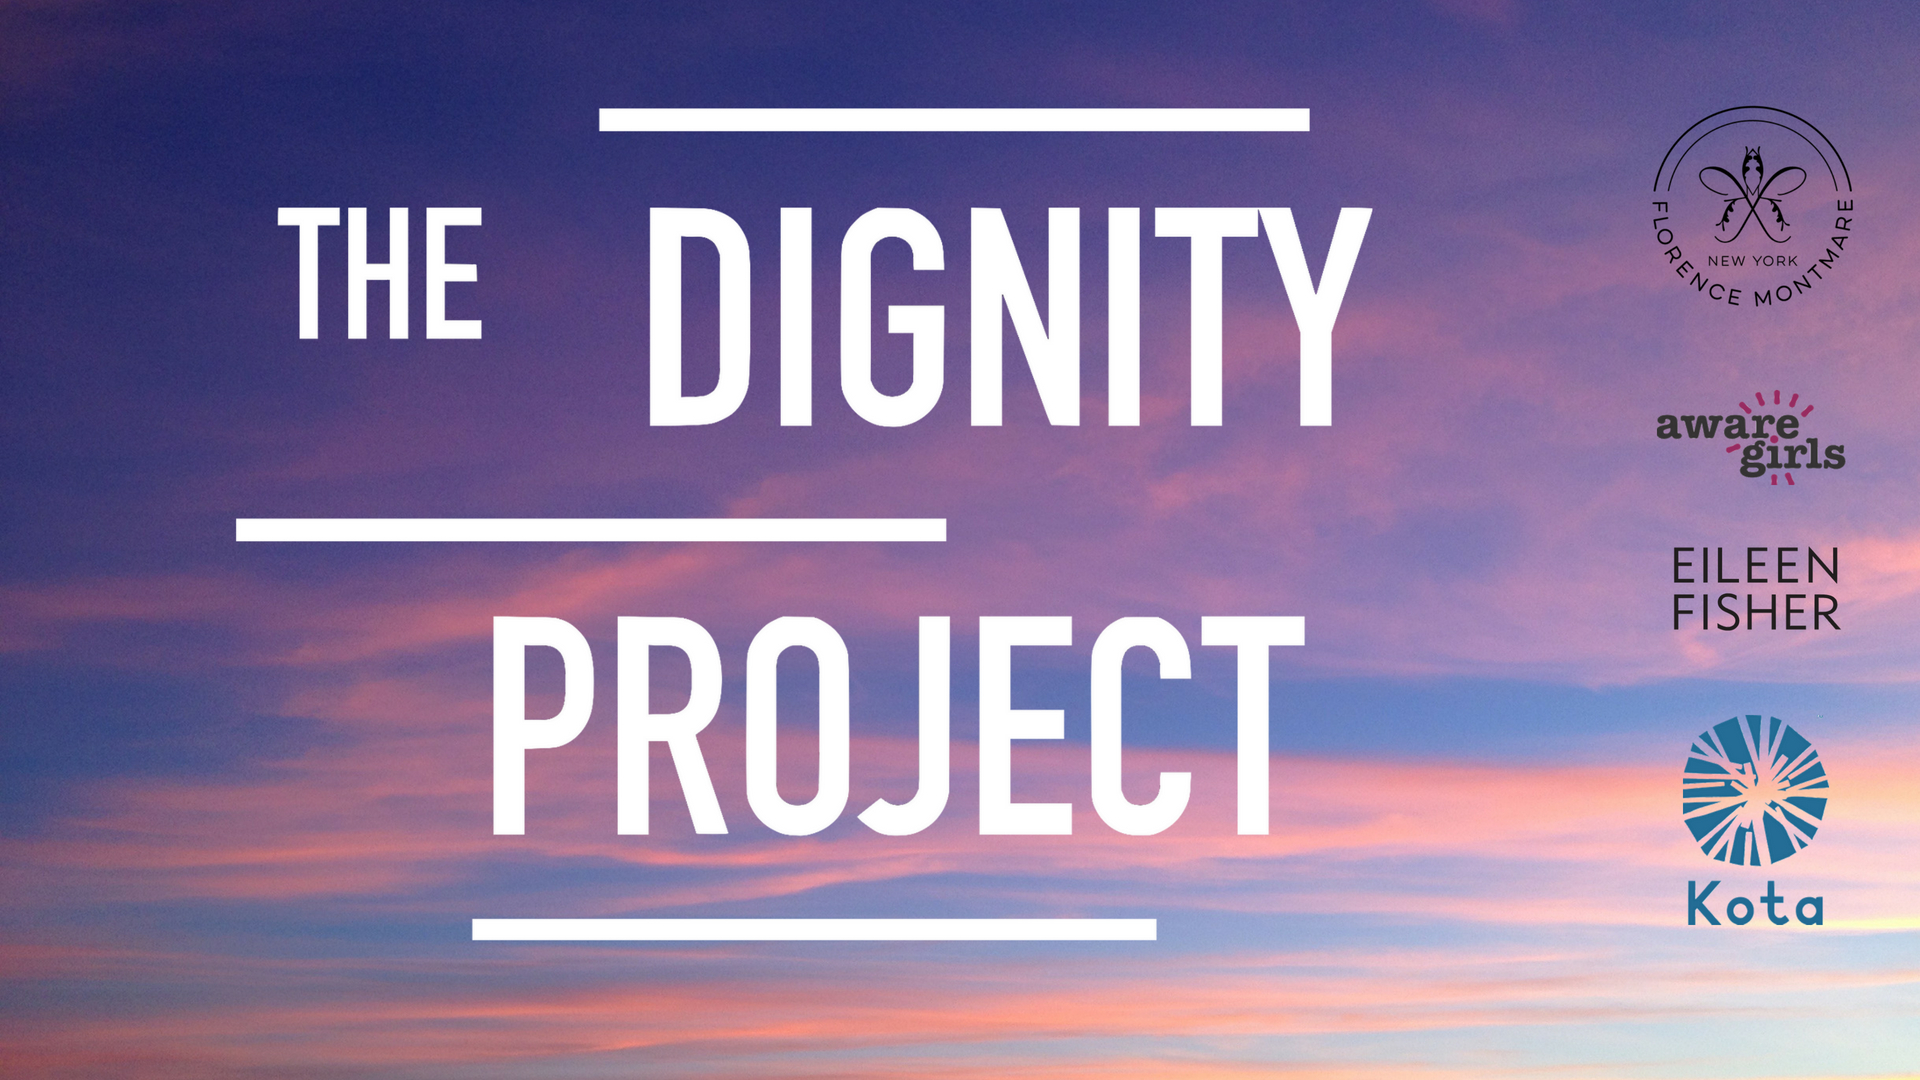 Eileen Fisher Dignity Project.jpg